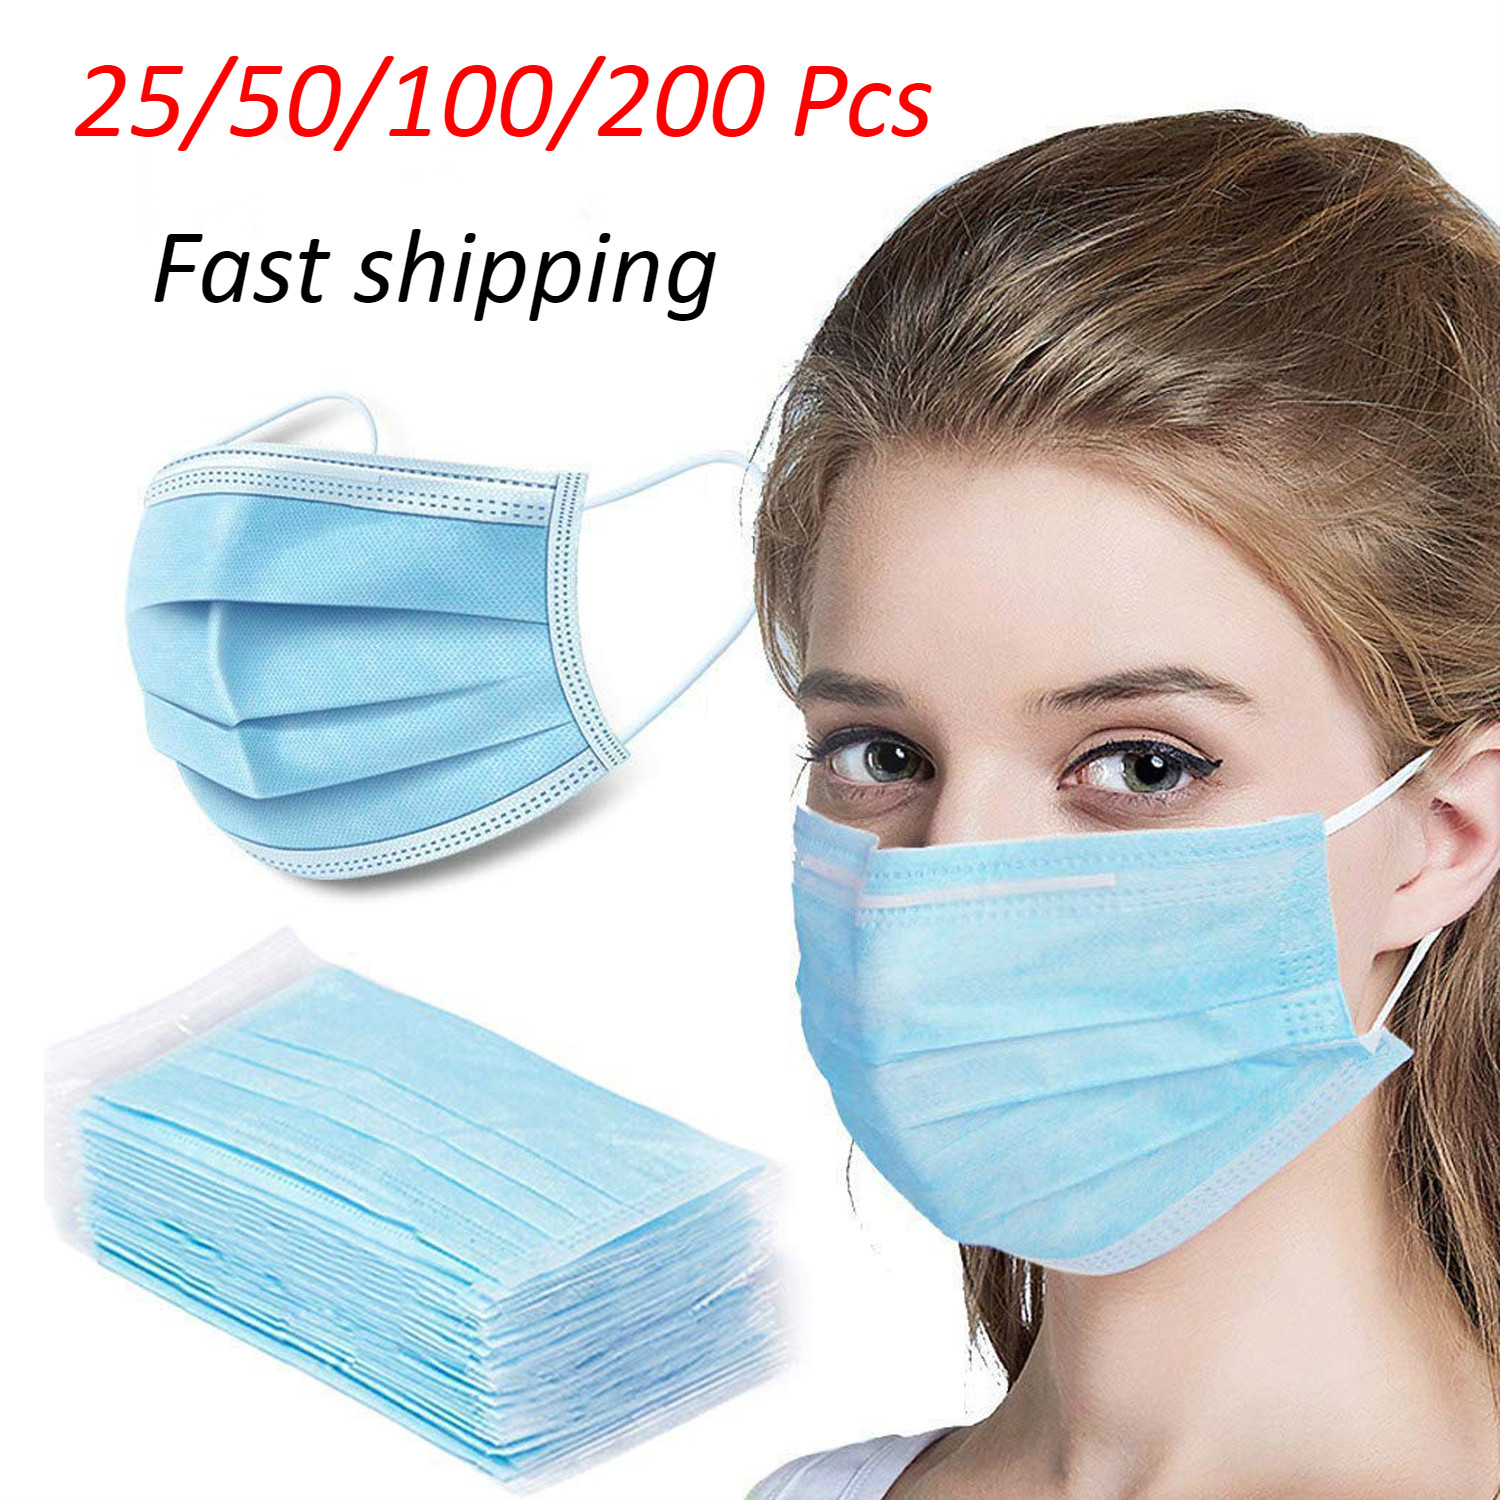 3 Layers Disposable Face Mask-mask Protection Mouth Face Cover Non-Woven Dust Protective Maskmask Earloop Breathable Facemask